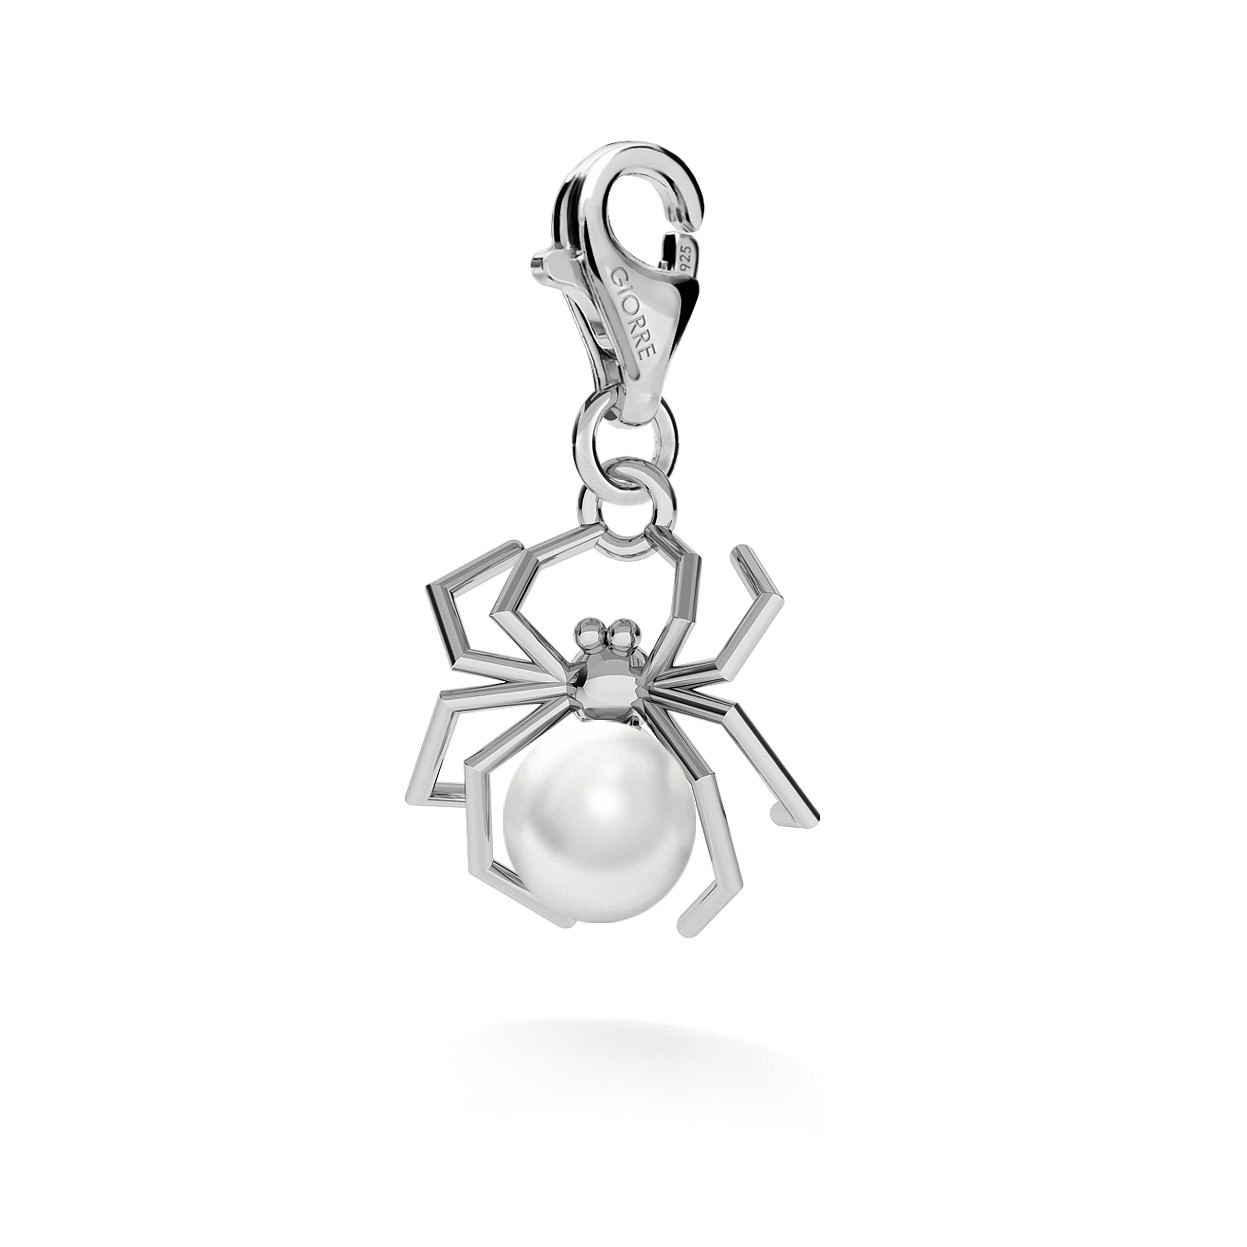 CHARM 117, SPIDER WITH PEARL STERLING SILVER (925) RHODIUM OR GOLD PLATE